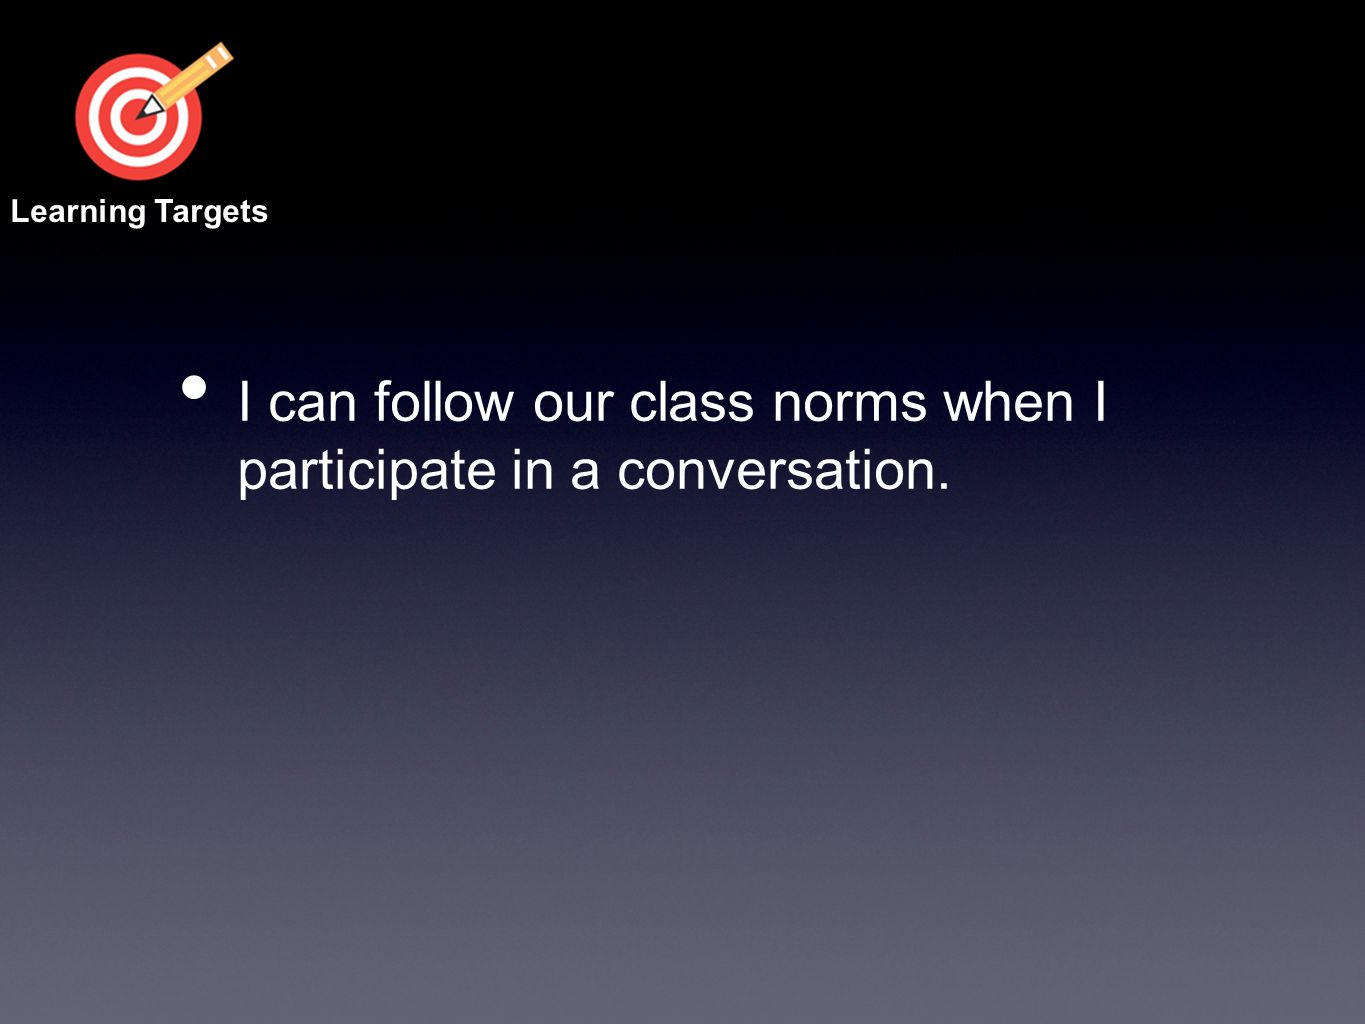 I can follow our class norms when I participate in a conversation.